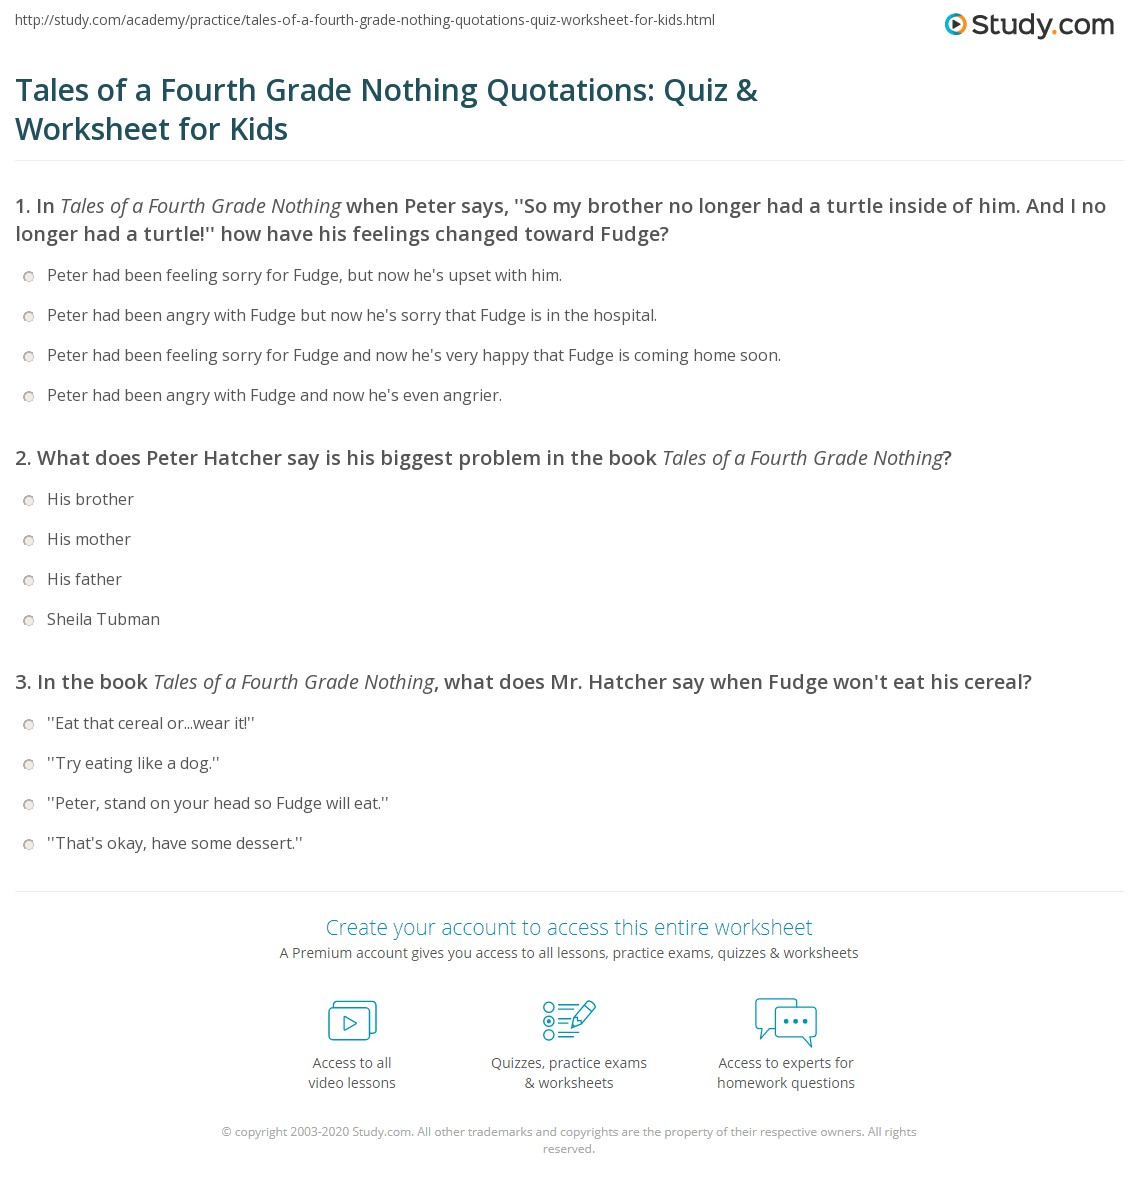 Tales Of A Fourth Grade Nothing Quotations Quiz